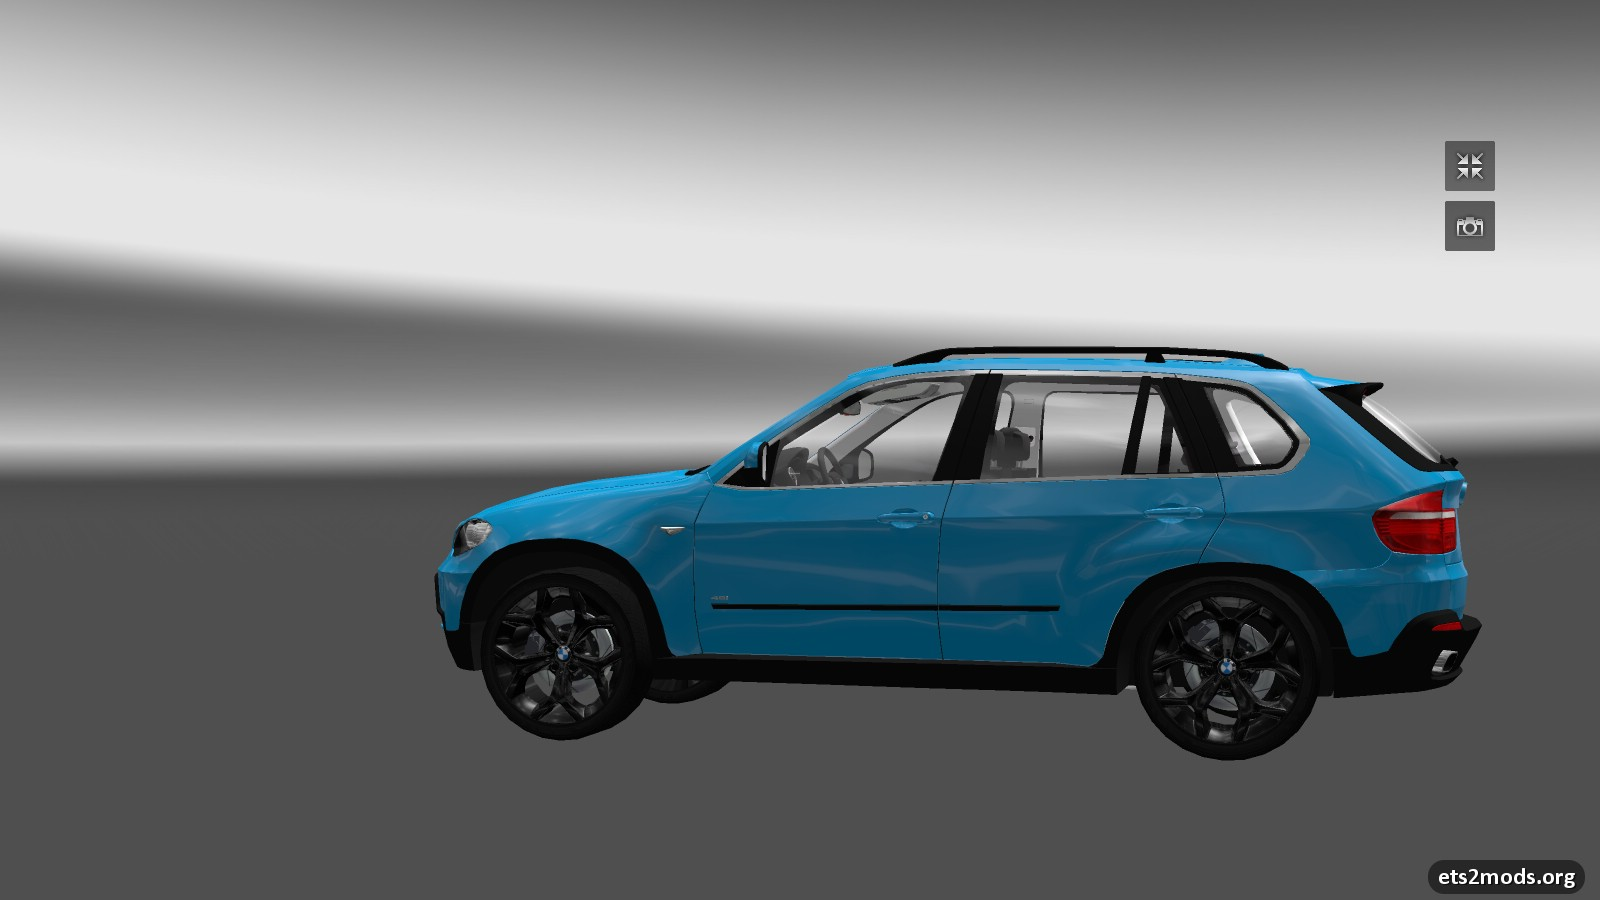 bmw x5 e70 interior sound physics ets2 mods. Black Bedroom Furniture Sets. Home Design Ideas